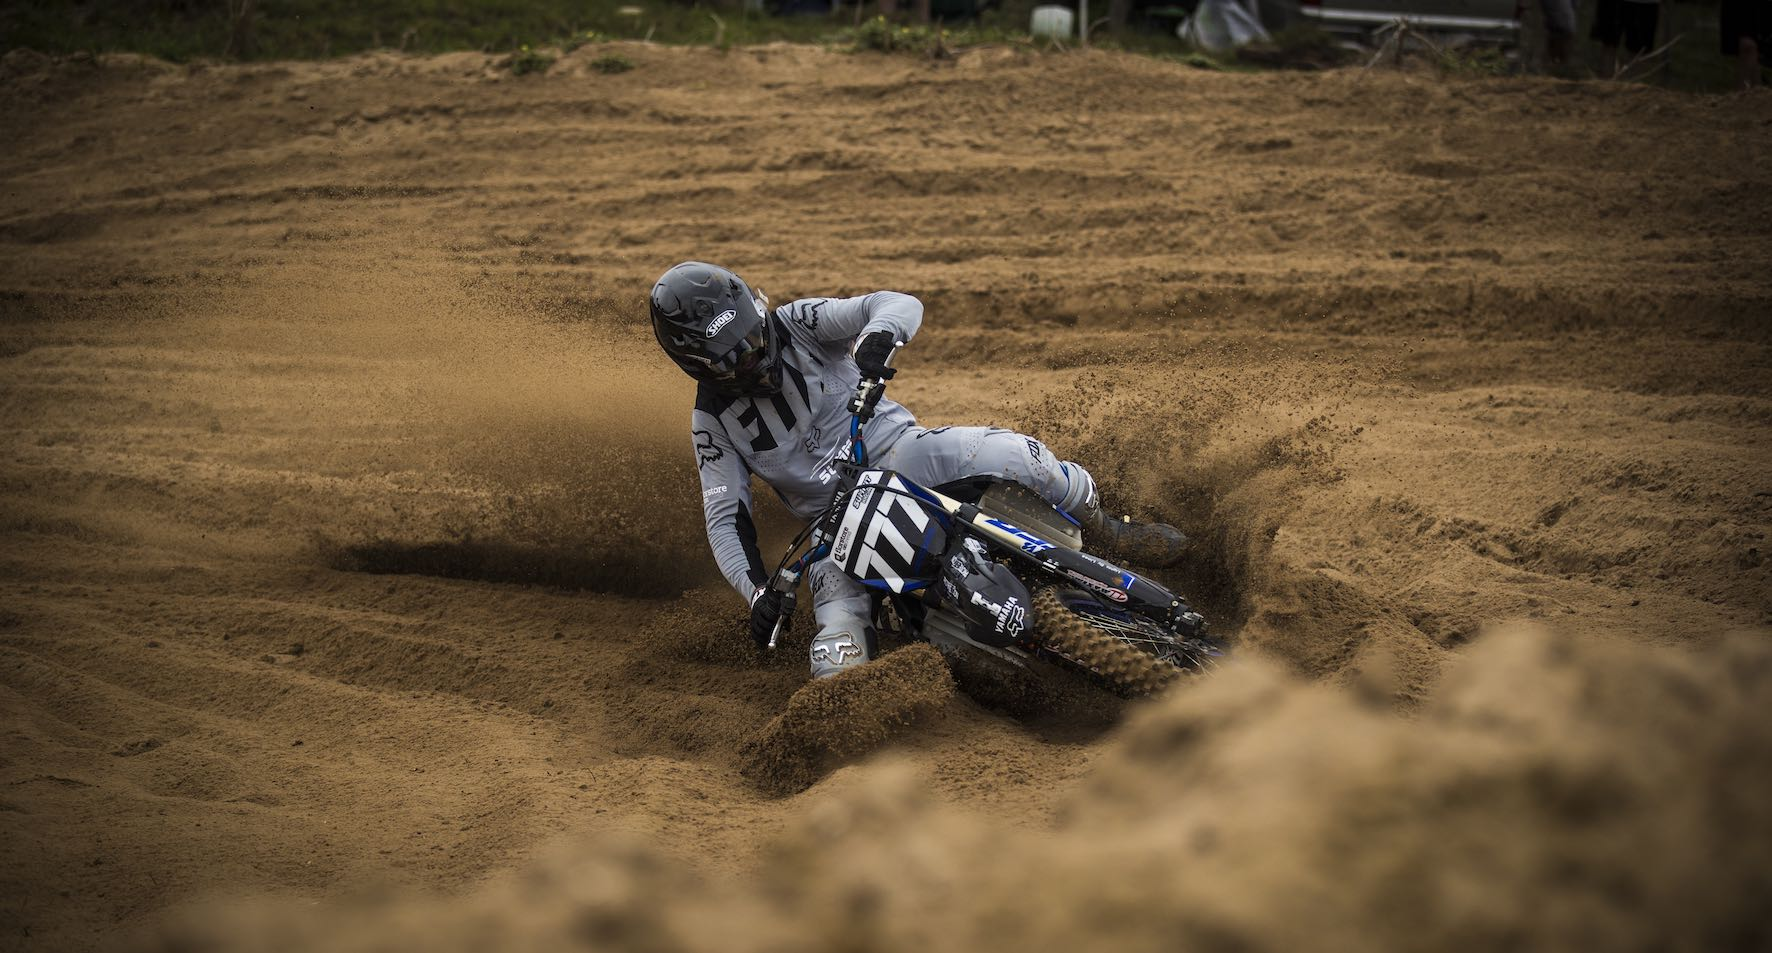 Lloyd Vercueil racing to victory in the MX1 category